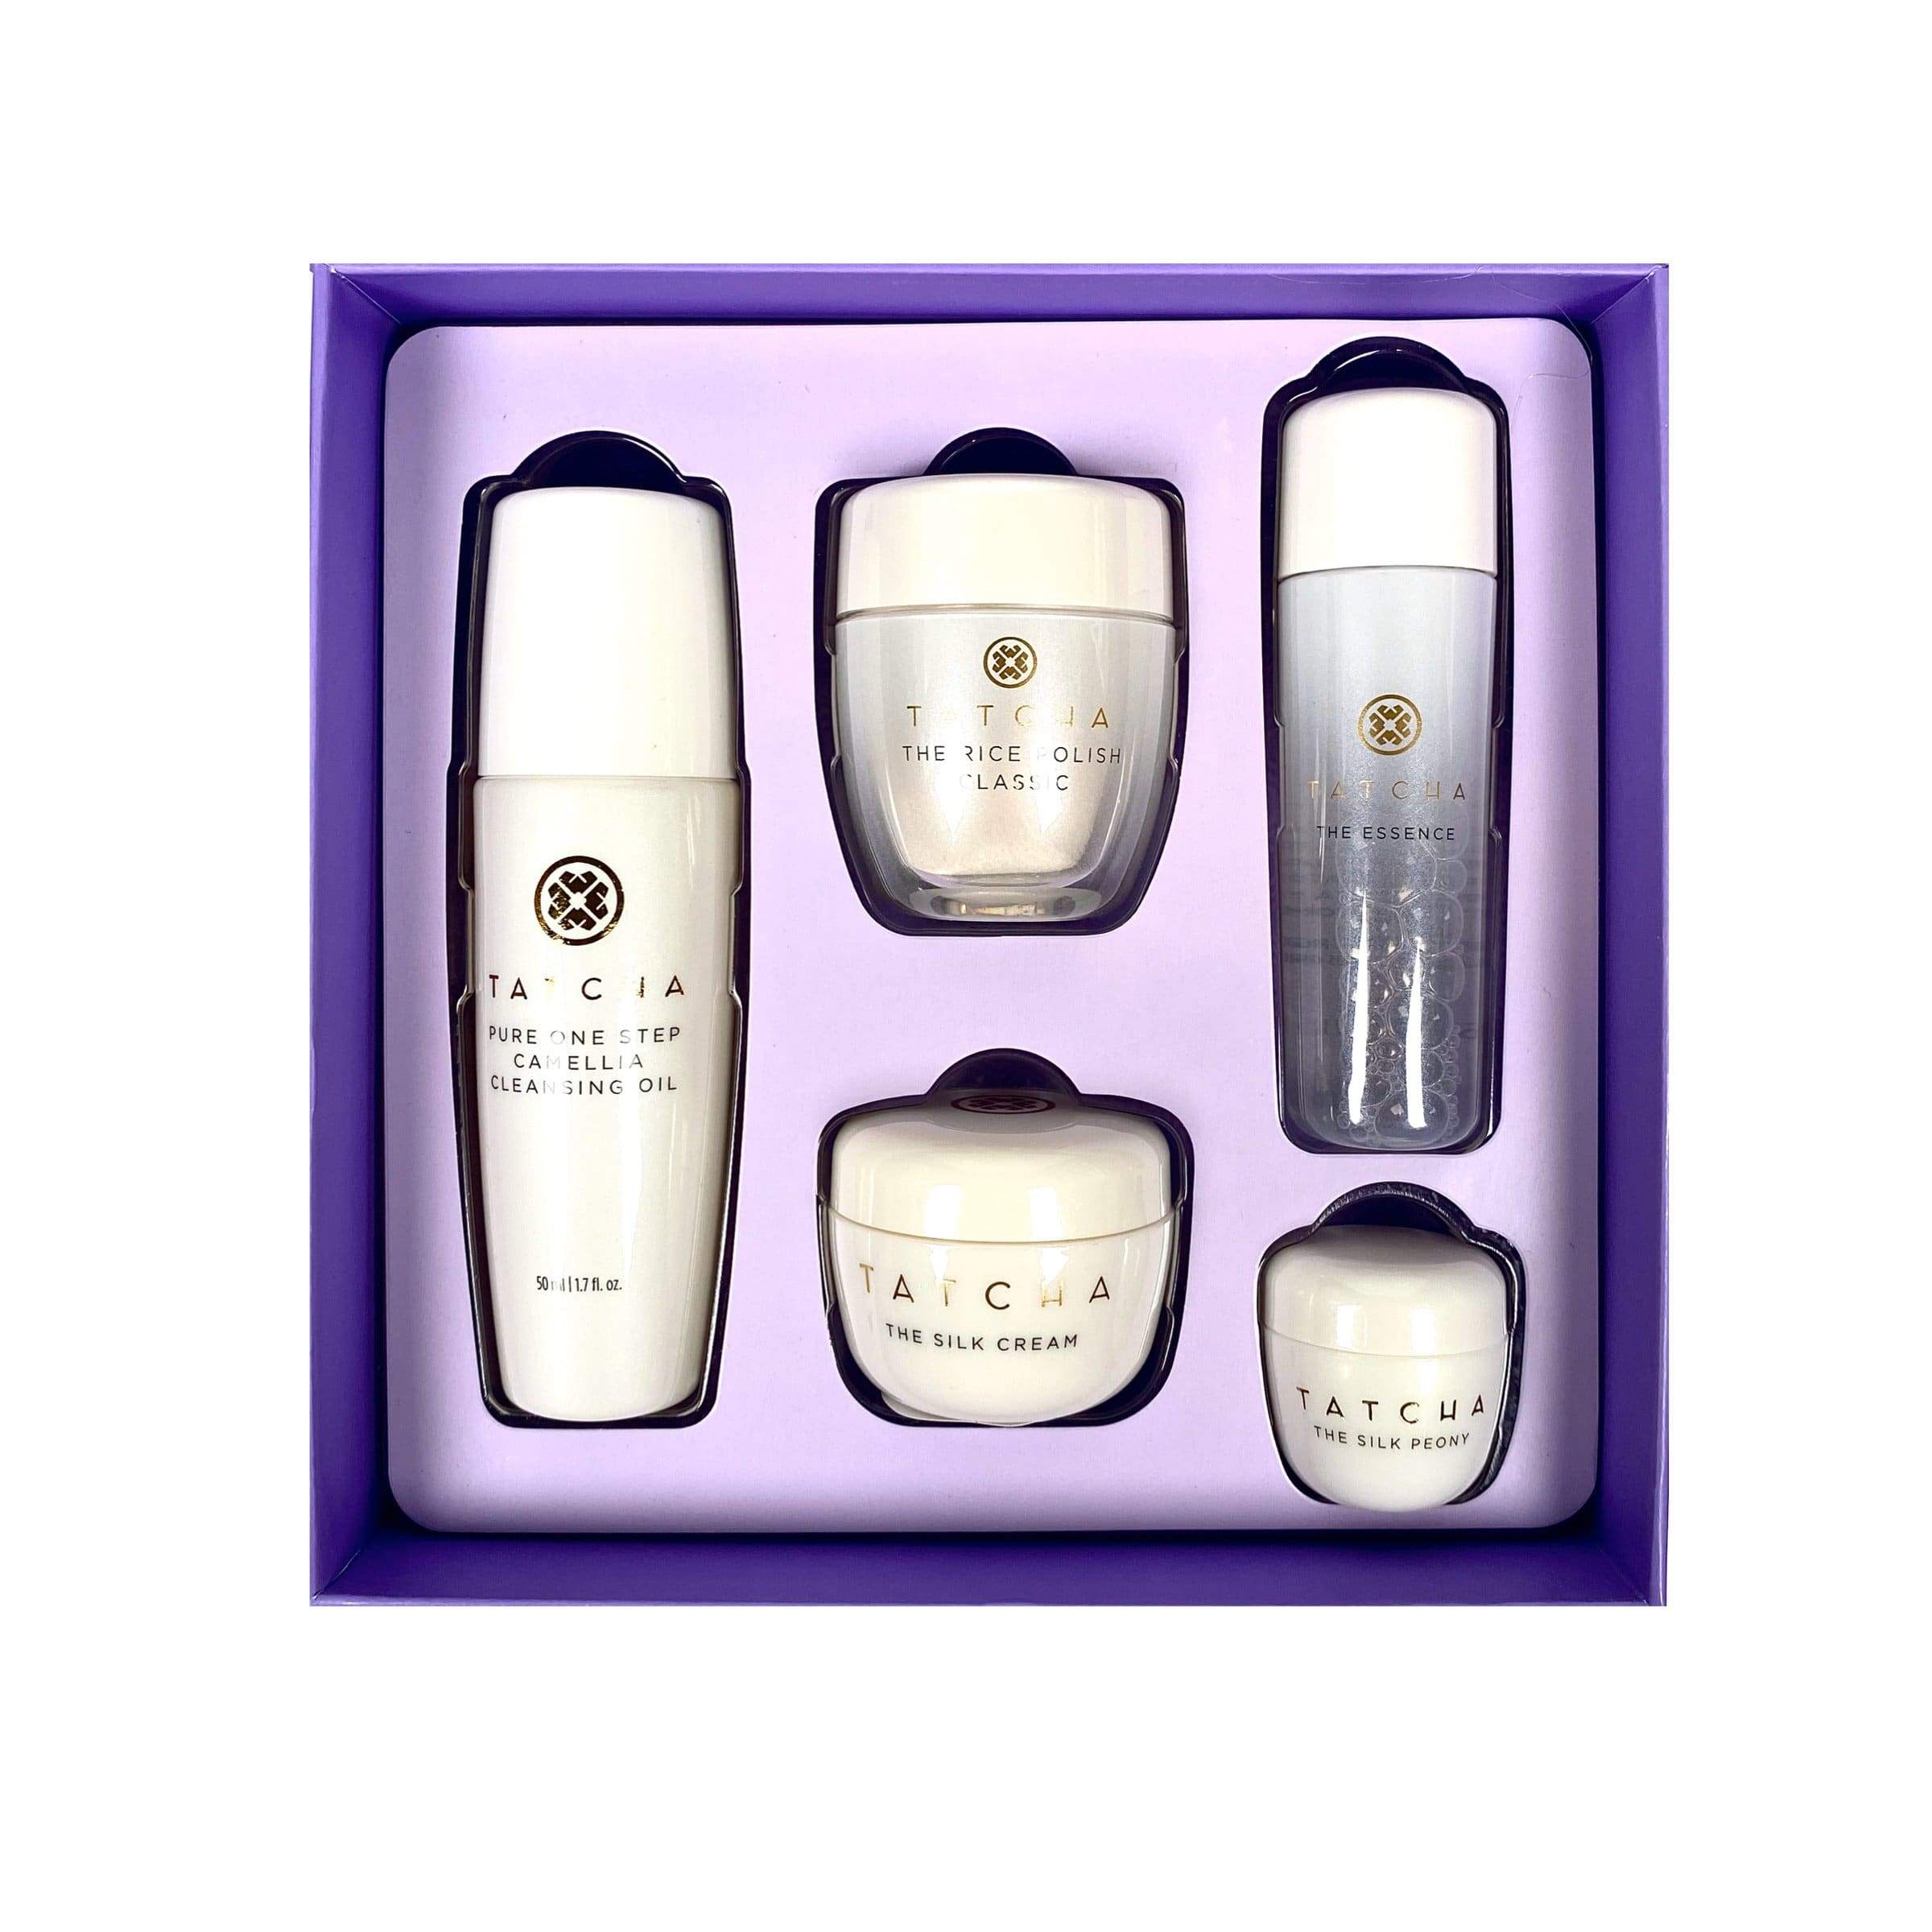 TATCHA The Starter Ritual Nourishing & Anti-Aging Set - Normal To Dry Skin, Gift Sets, London Loves Beauty